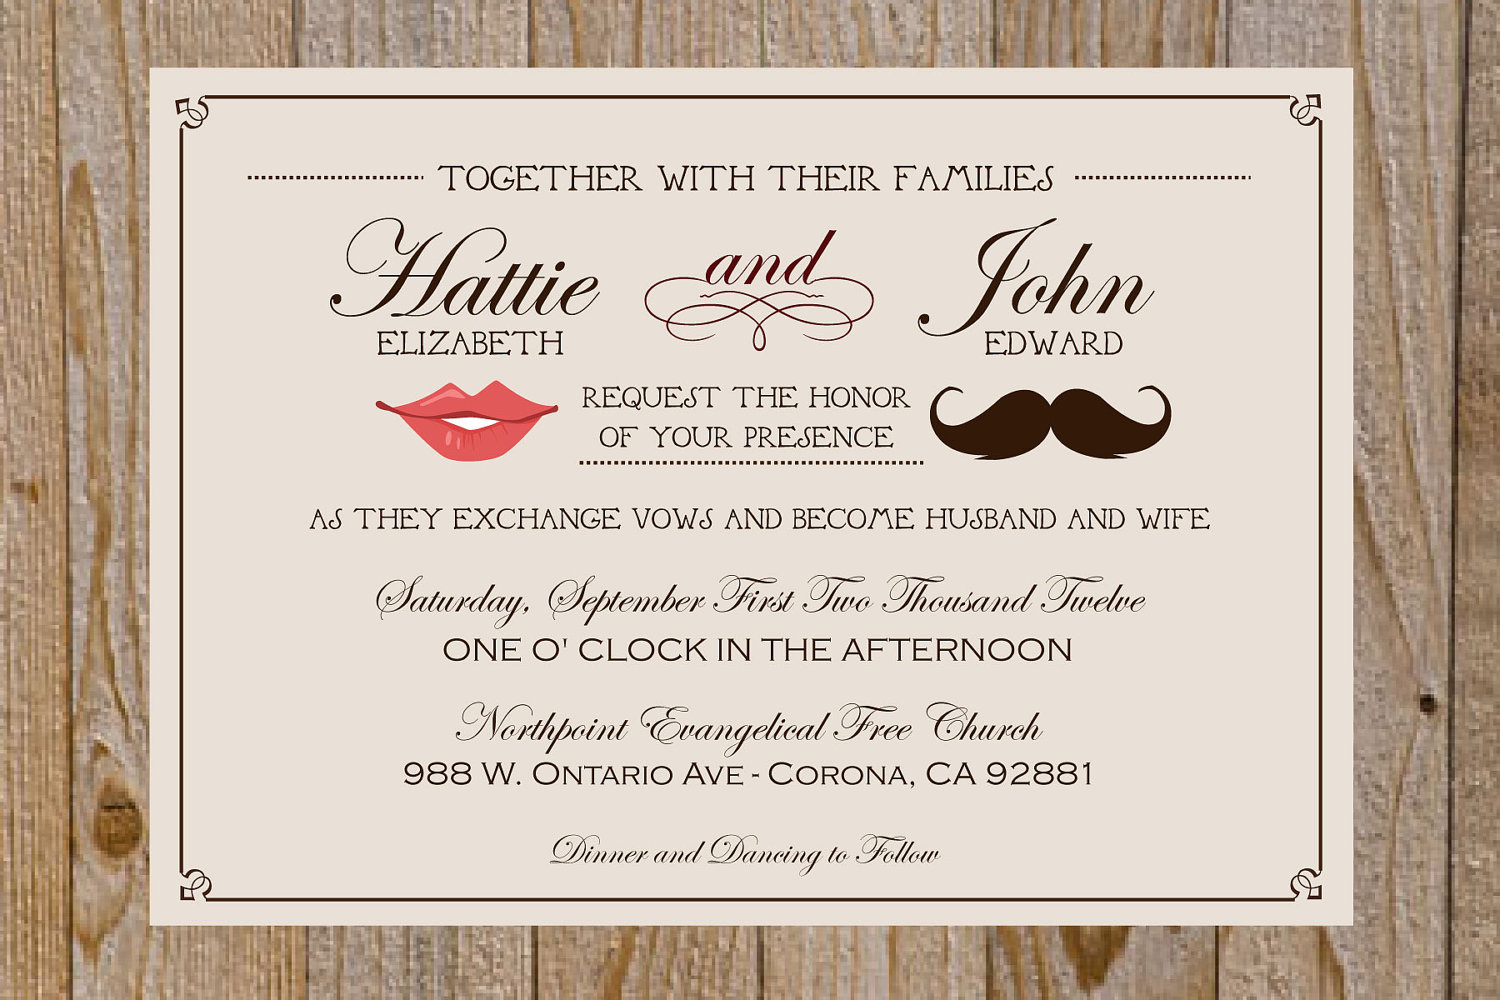 doc wedding invitation funny wording creative wedding funny wedding invite funny wedding invitations designs and wedding invitation funny wording